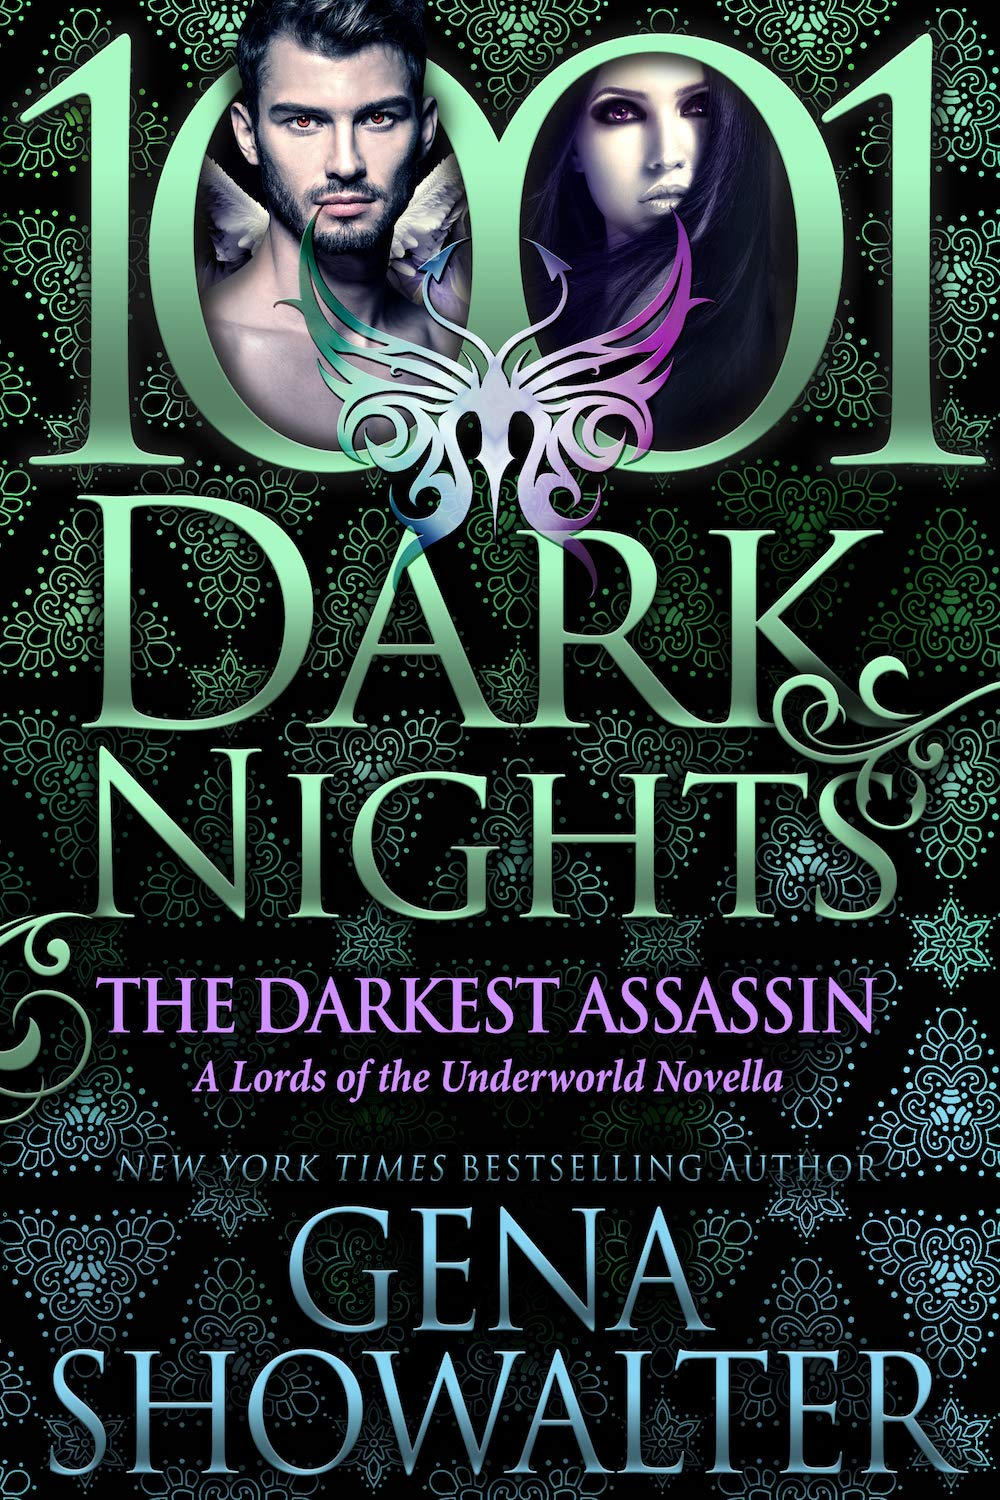 Excerpt: The Darkest Assassin